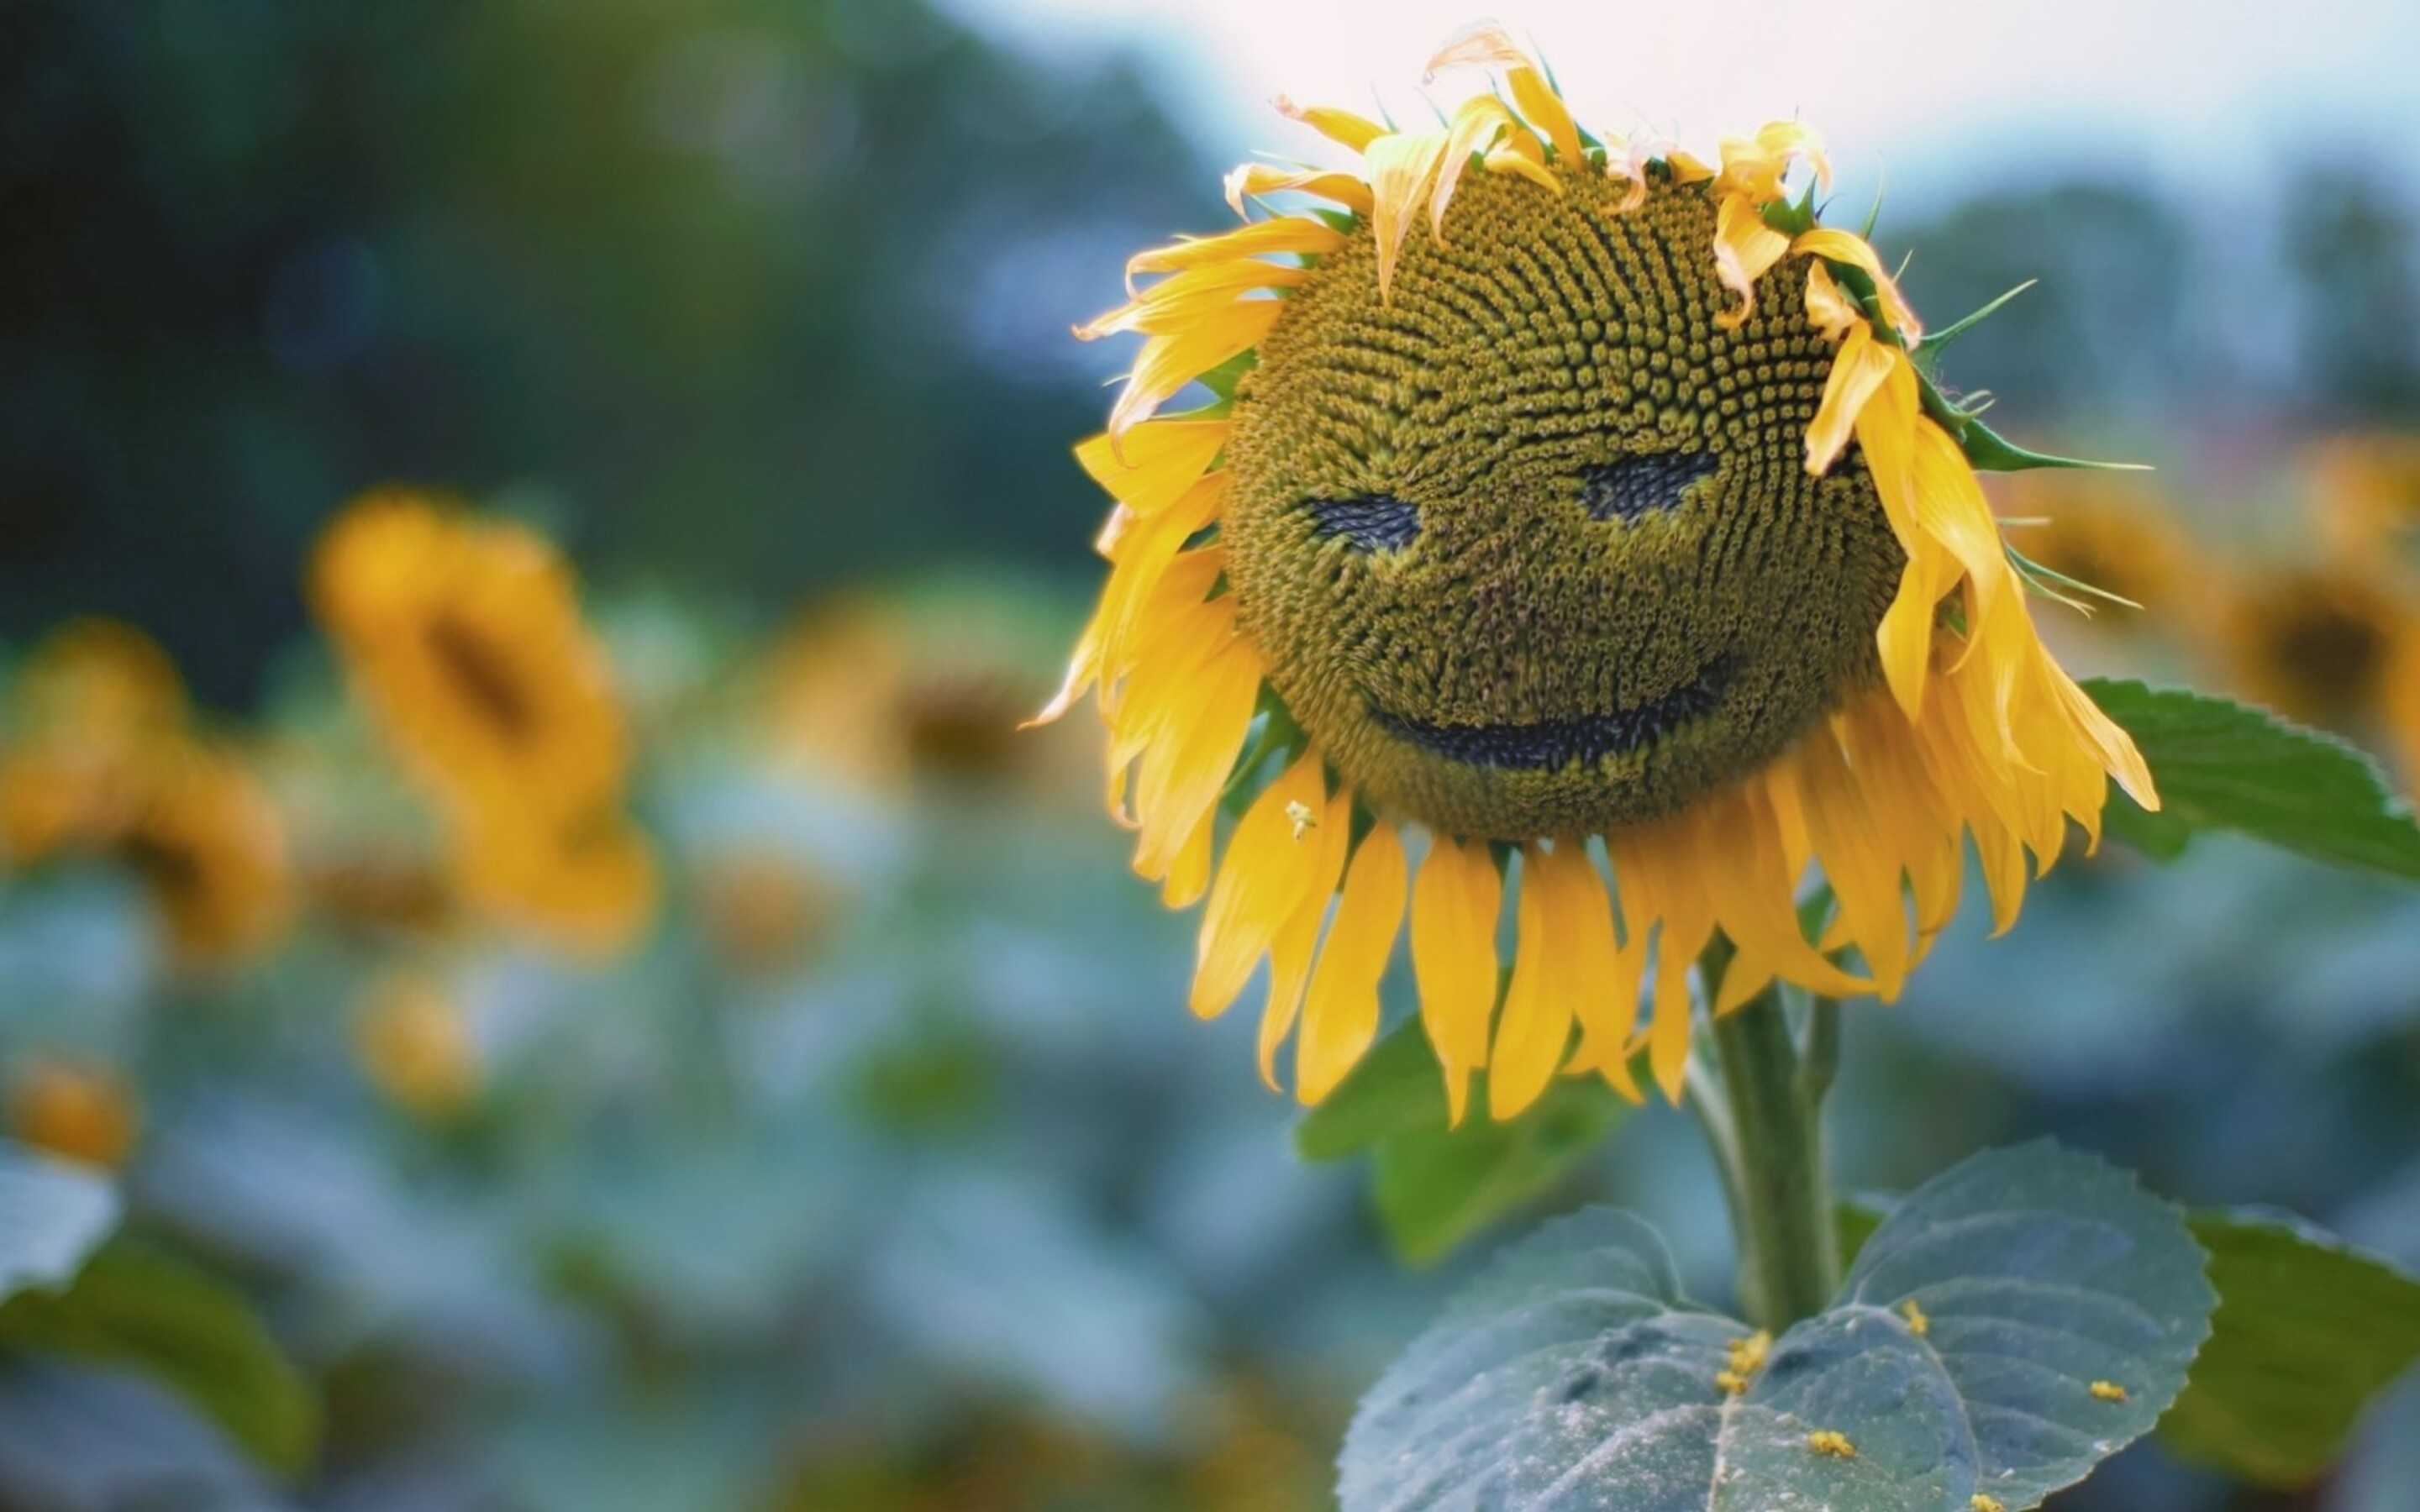 Must see Wallpaper Macbook Sunflower - sunflower-smiley-pic-2880x1800  Trends_257639.jpg